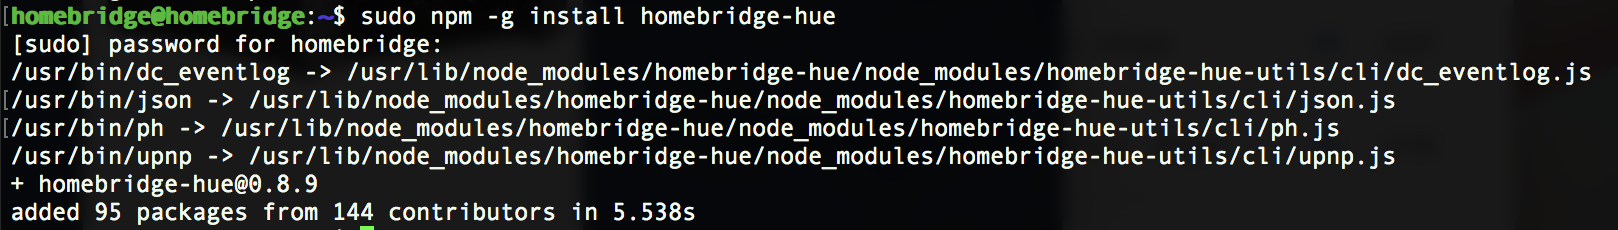 Update der Homebridge über NPM